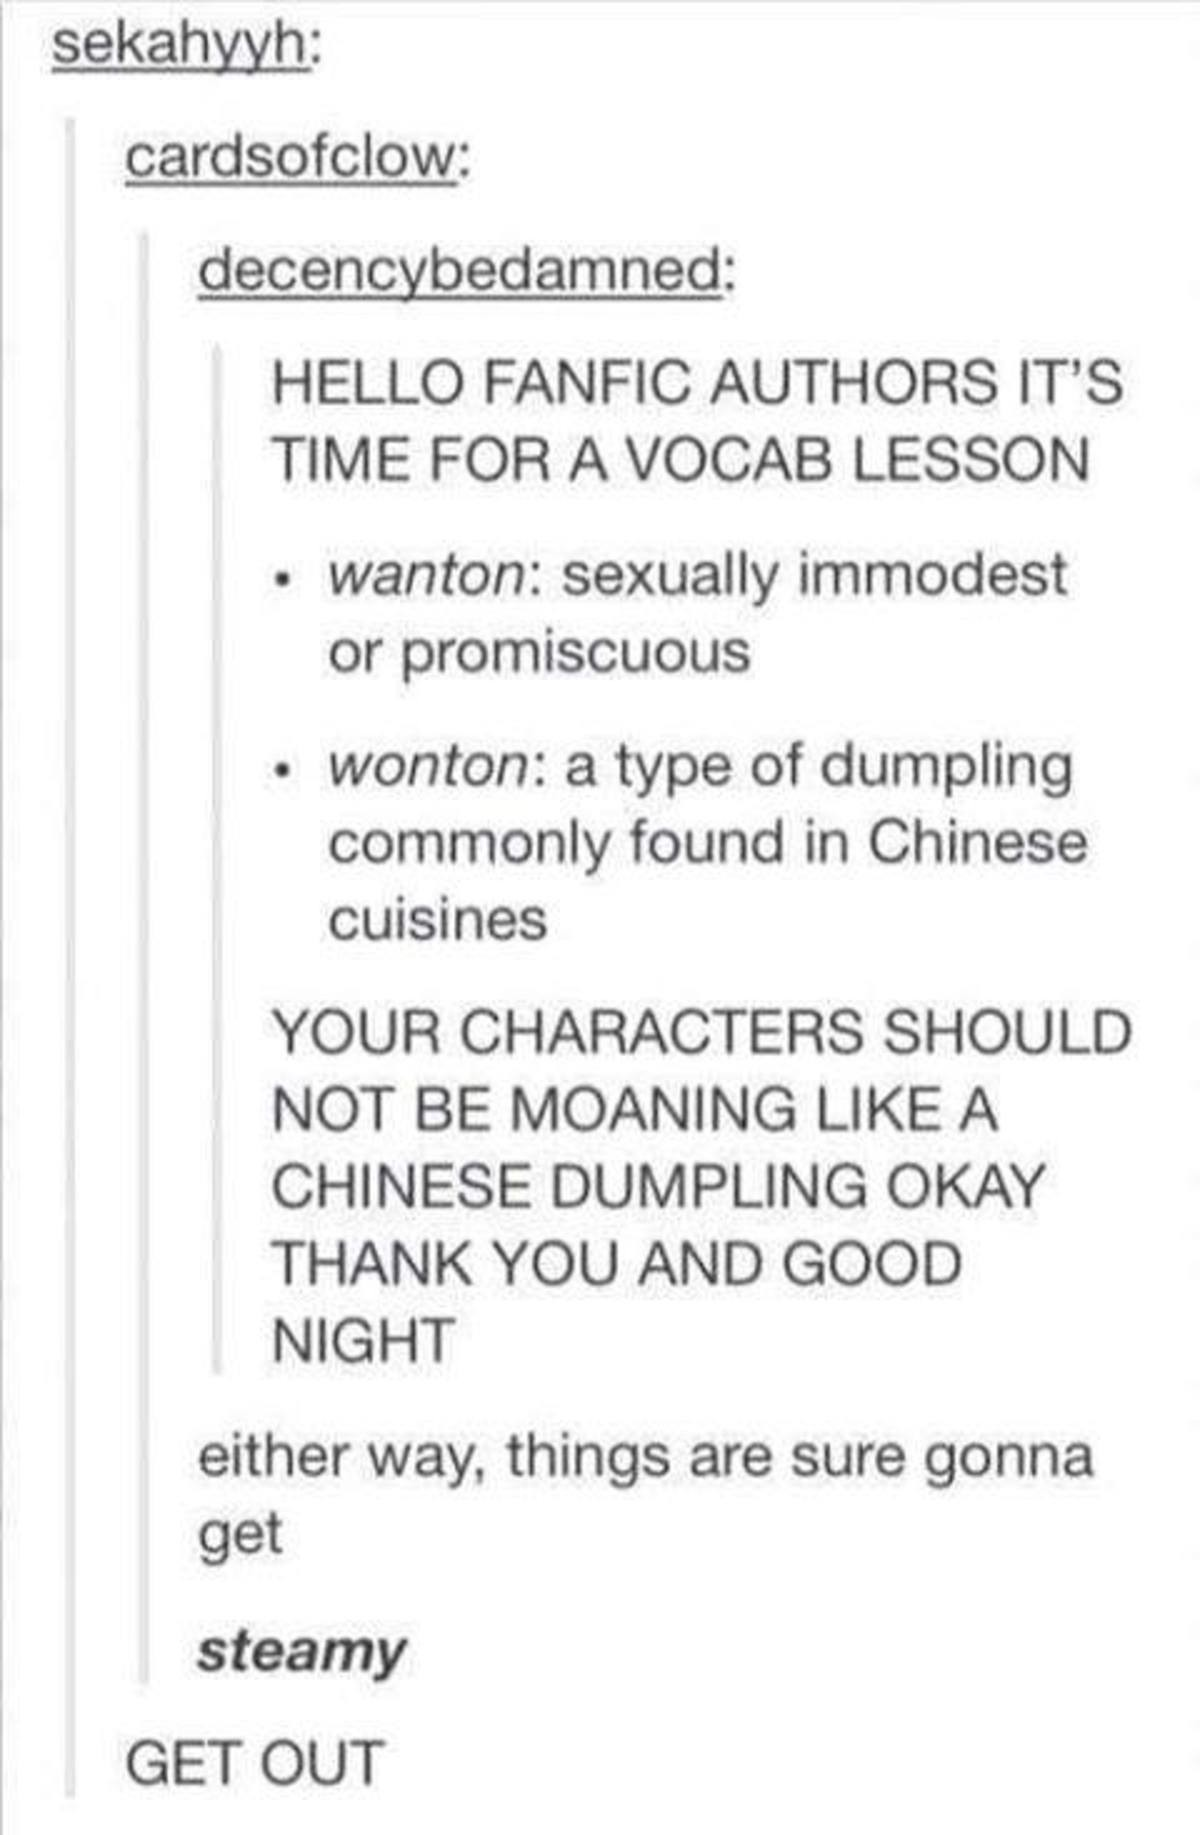 fanfic lesson. .. and to add to the whole confusion, over here the chinese dumplings are called wantanComment edited at .